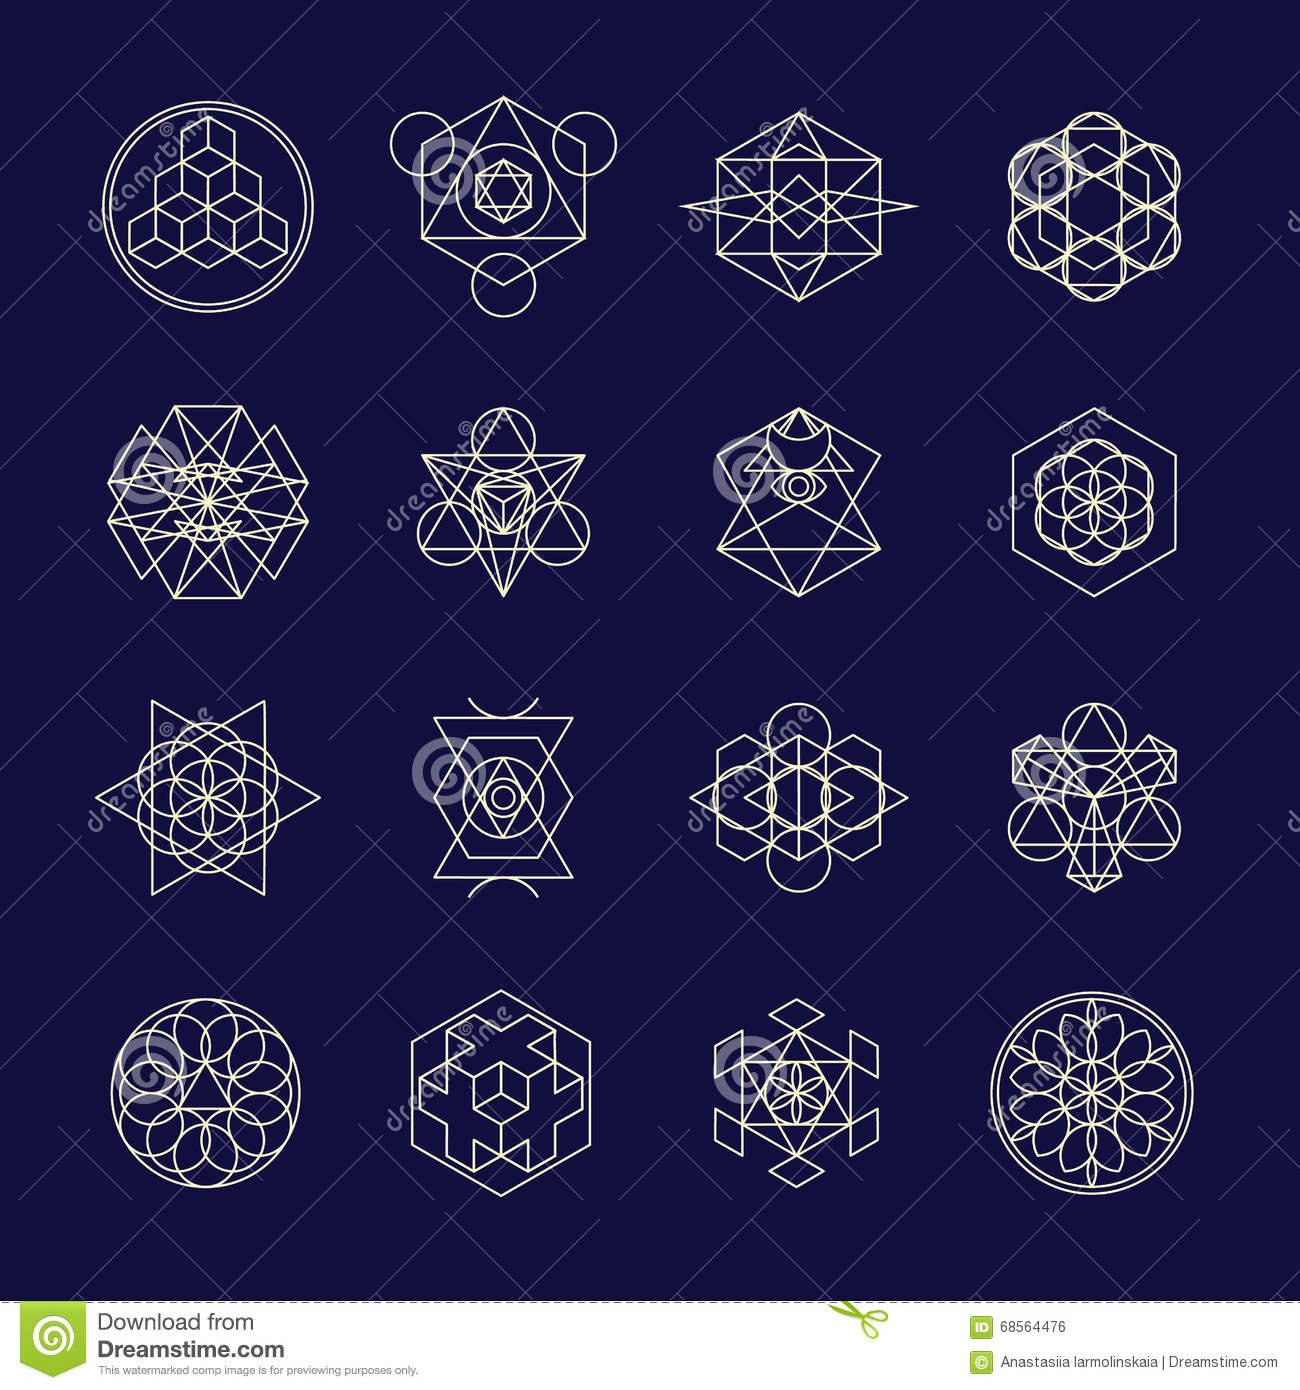 Line Geometric Design Symbols And Elements Stock Vector